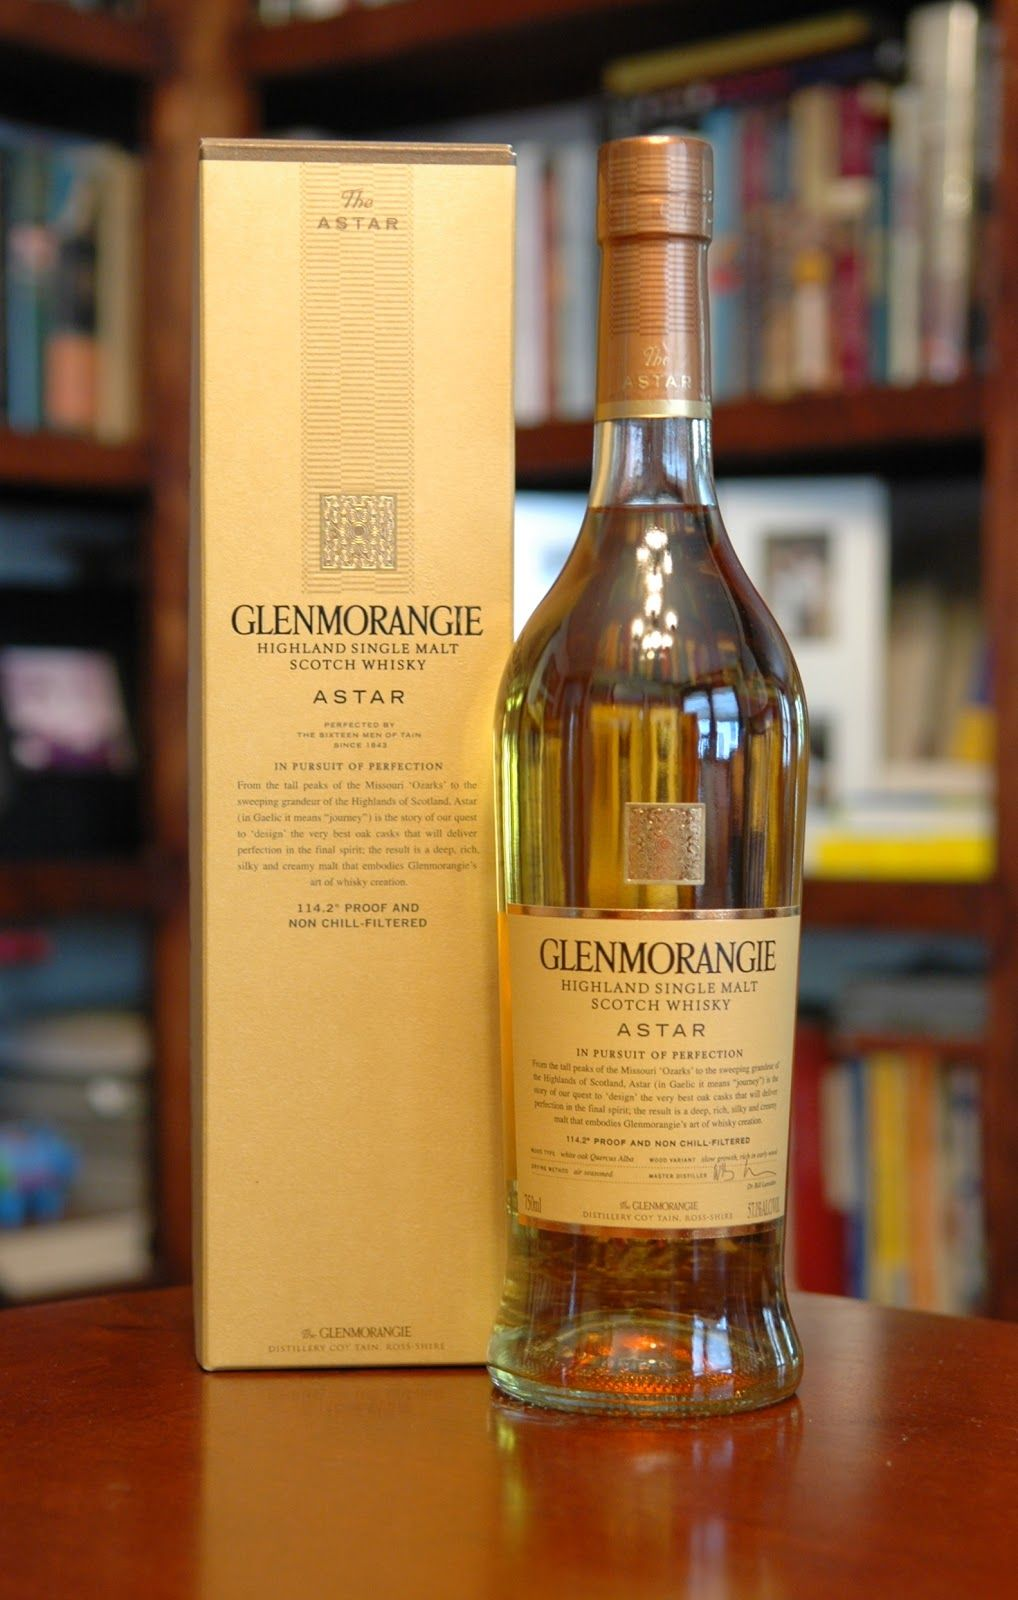 The Glenmorangie Astar Single Malt Scotch Whisky